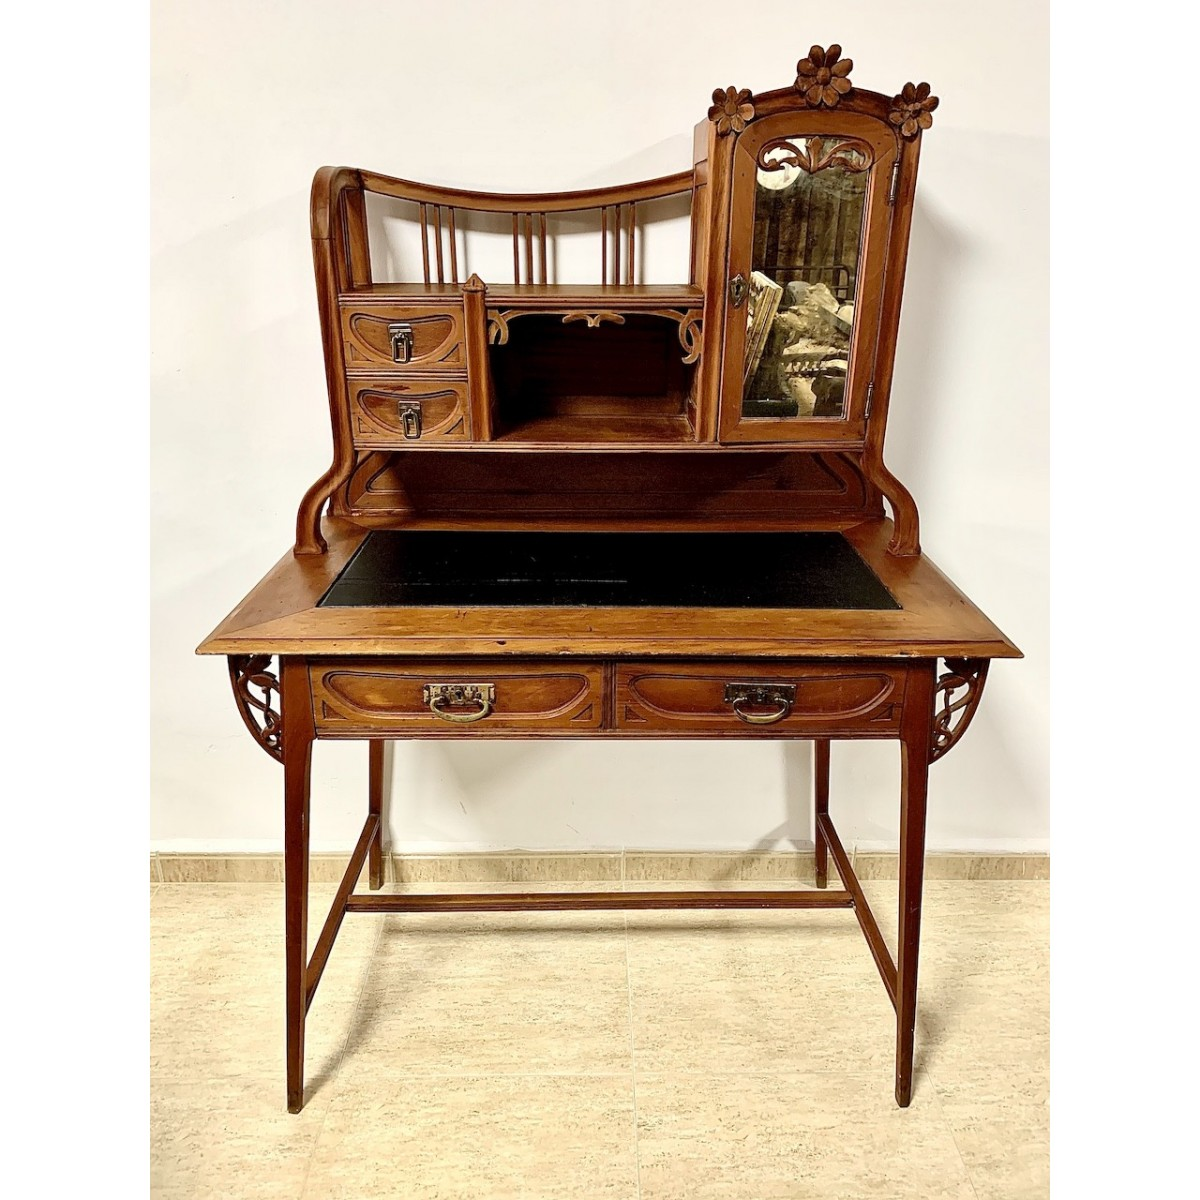 Liberty writing desk from the early 20th